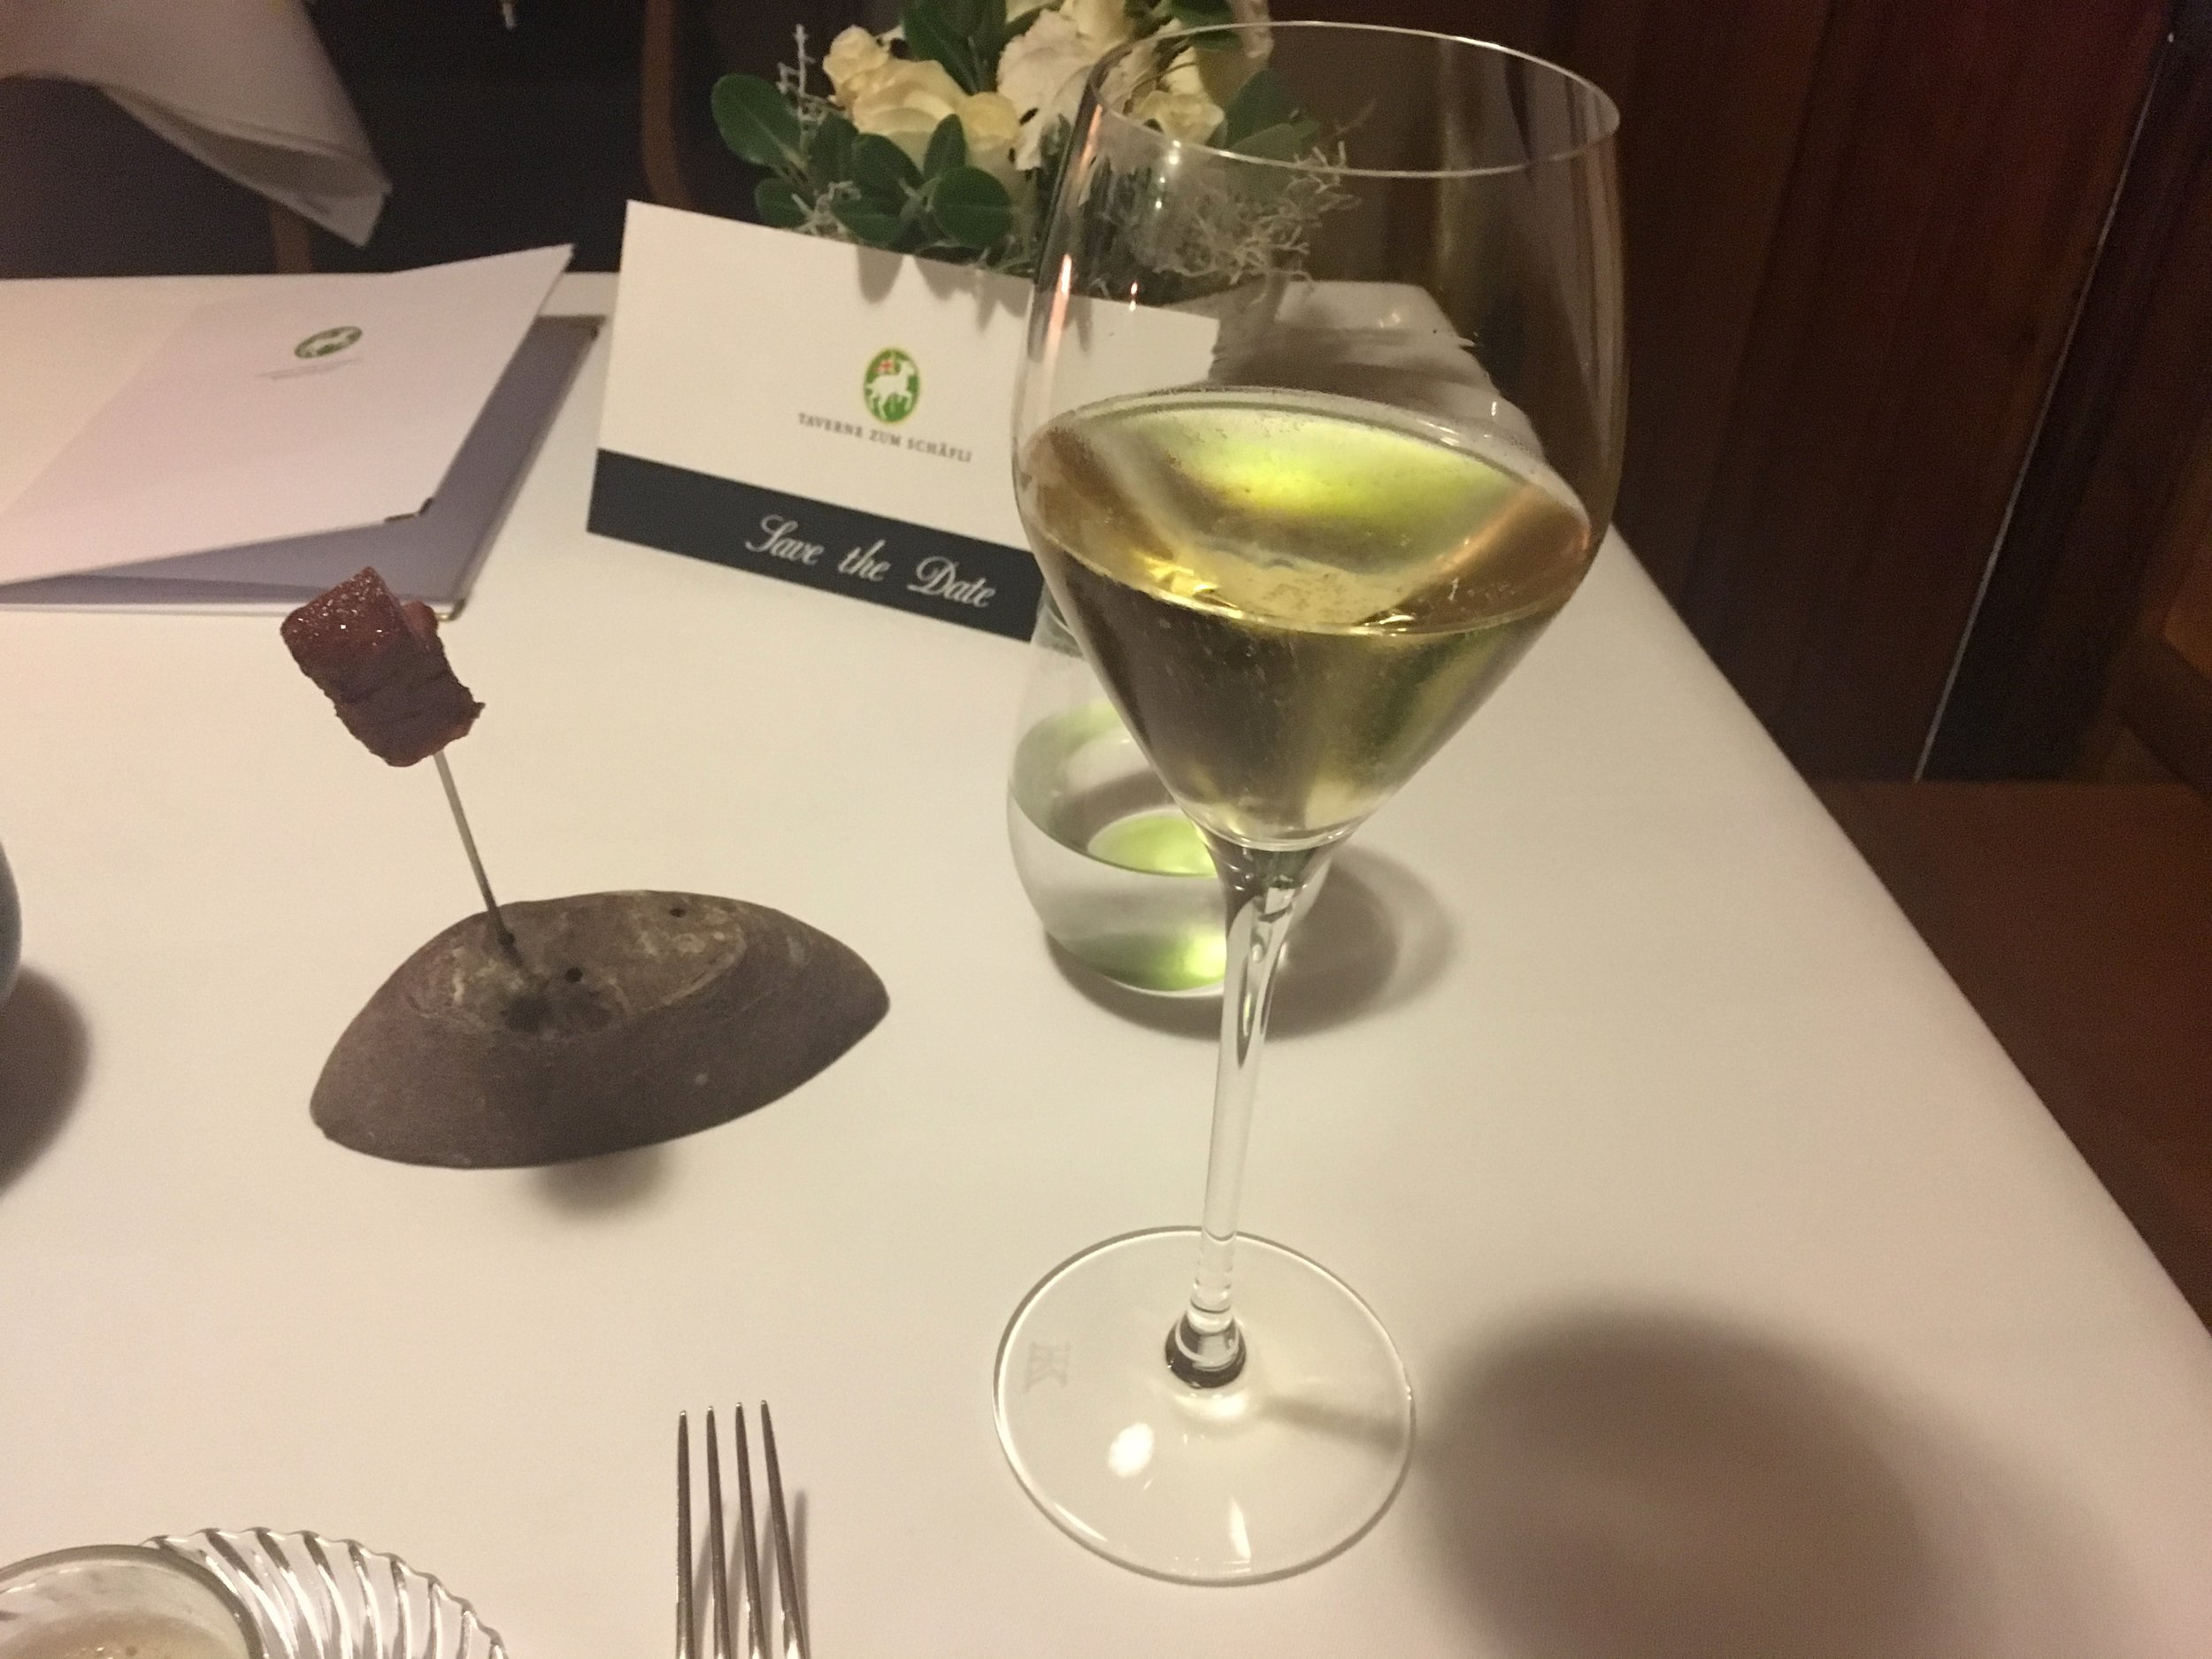 I had a glass of Delamotte Blanc de Blancs Brut as an aperitive